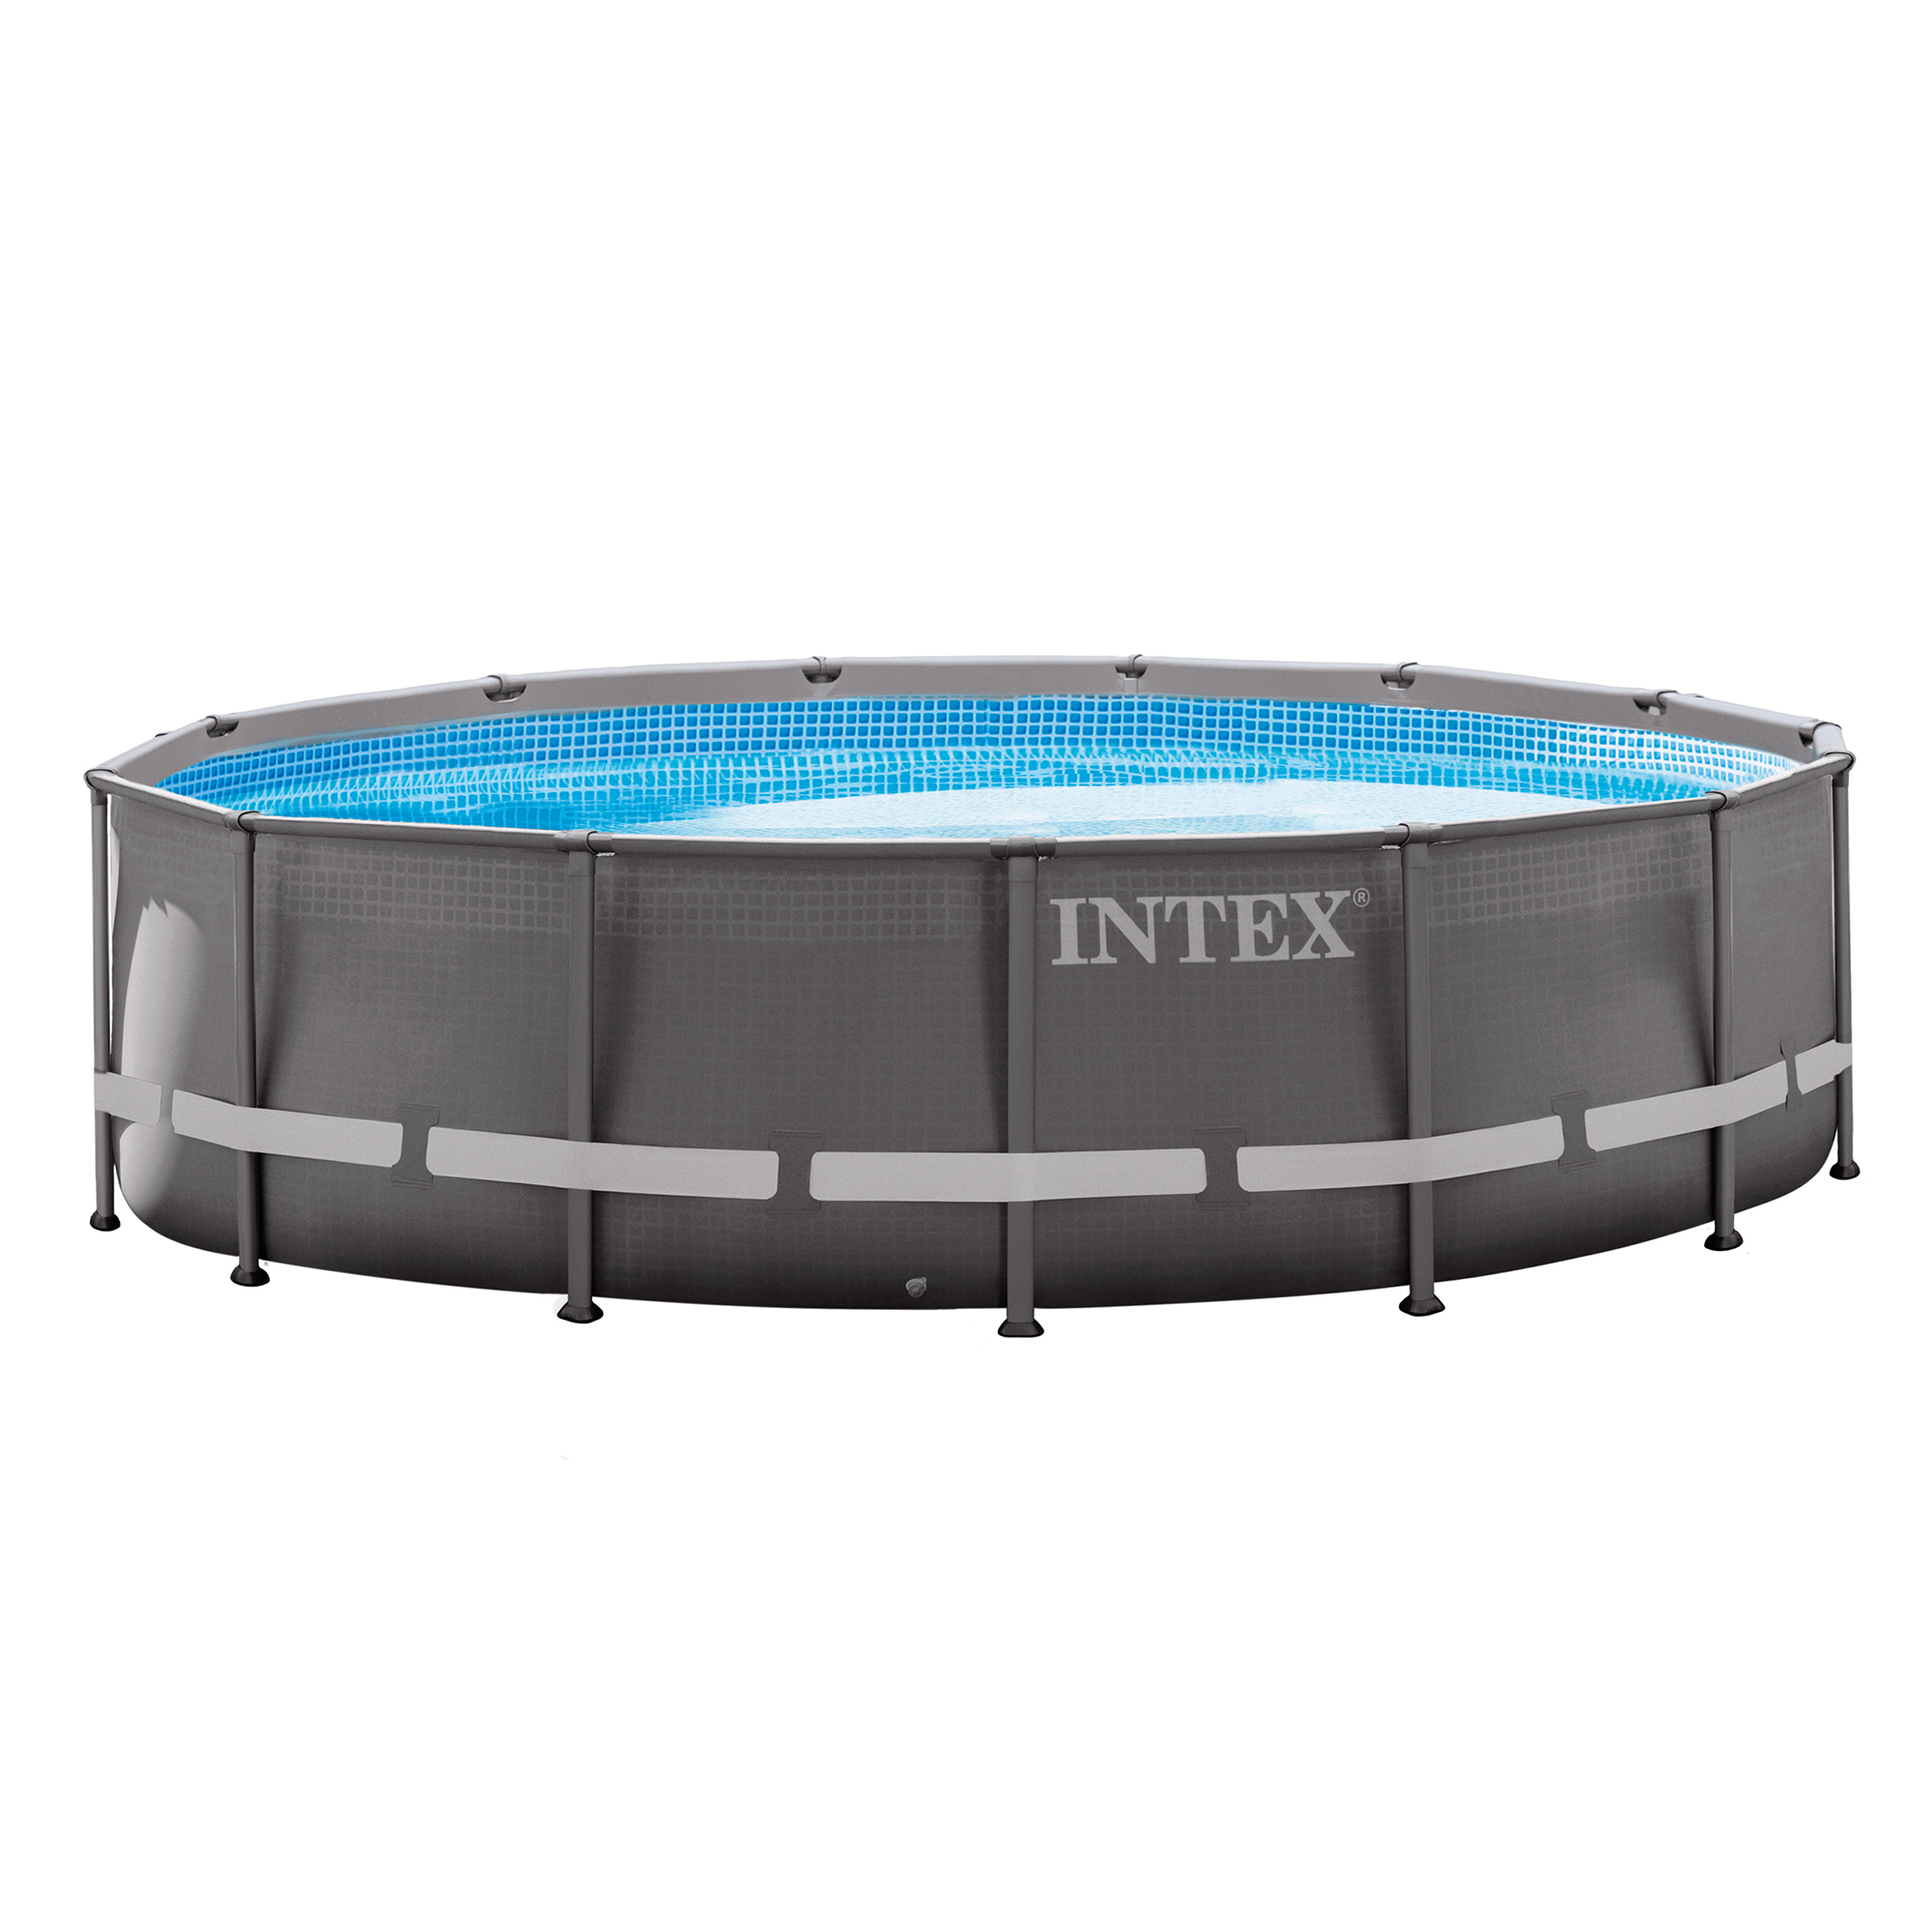 Intex 14 39 X 42 Above Ground Ultra Frame Pool Set With 1000 Gph Filter Pump Ebay